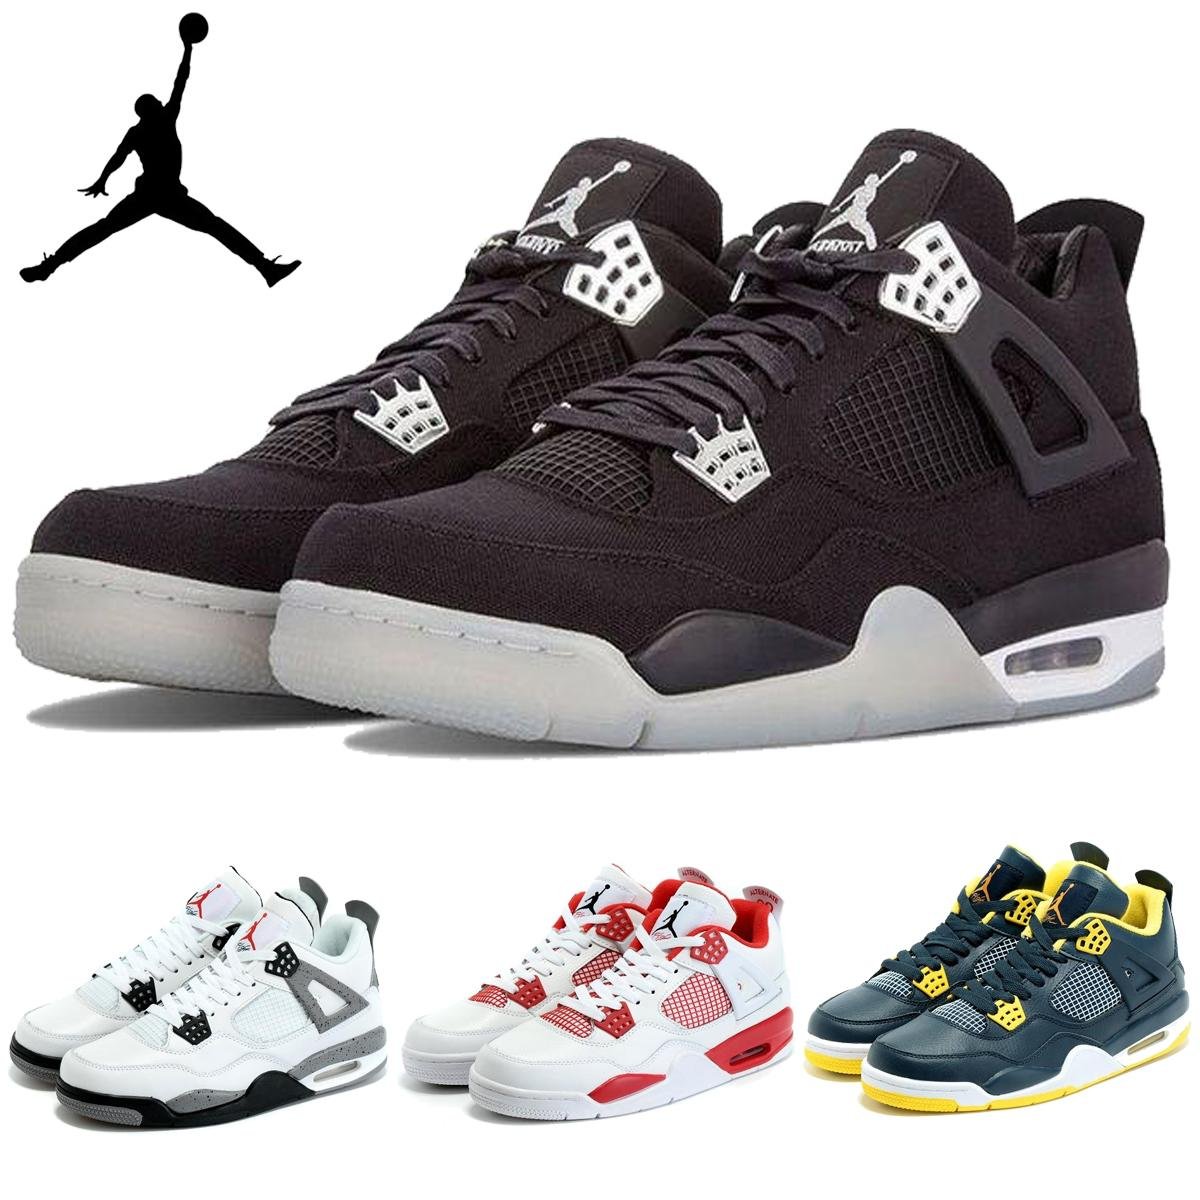 Nike Air Jordan 4 IV Retro Alternate 89 White Black Gym Red Mens Basketball Shoes Sports